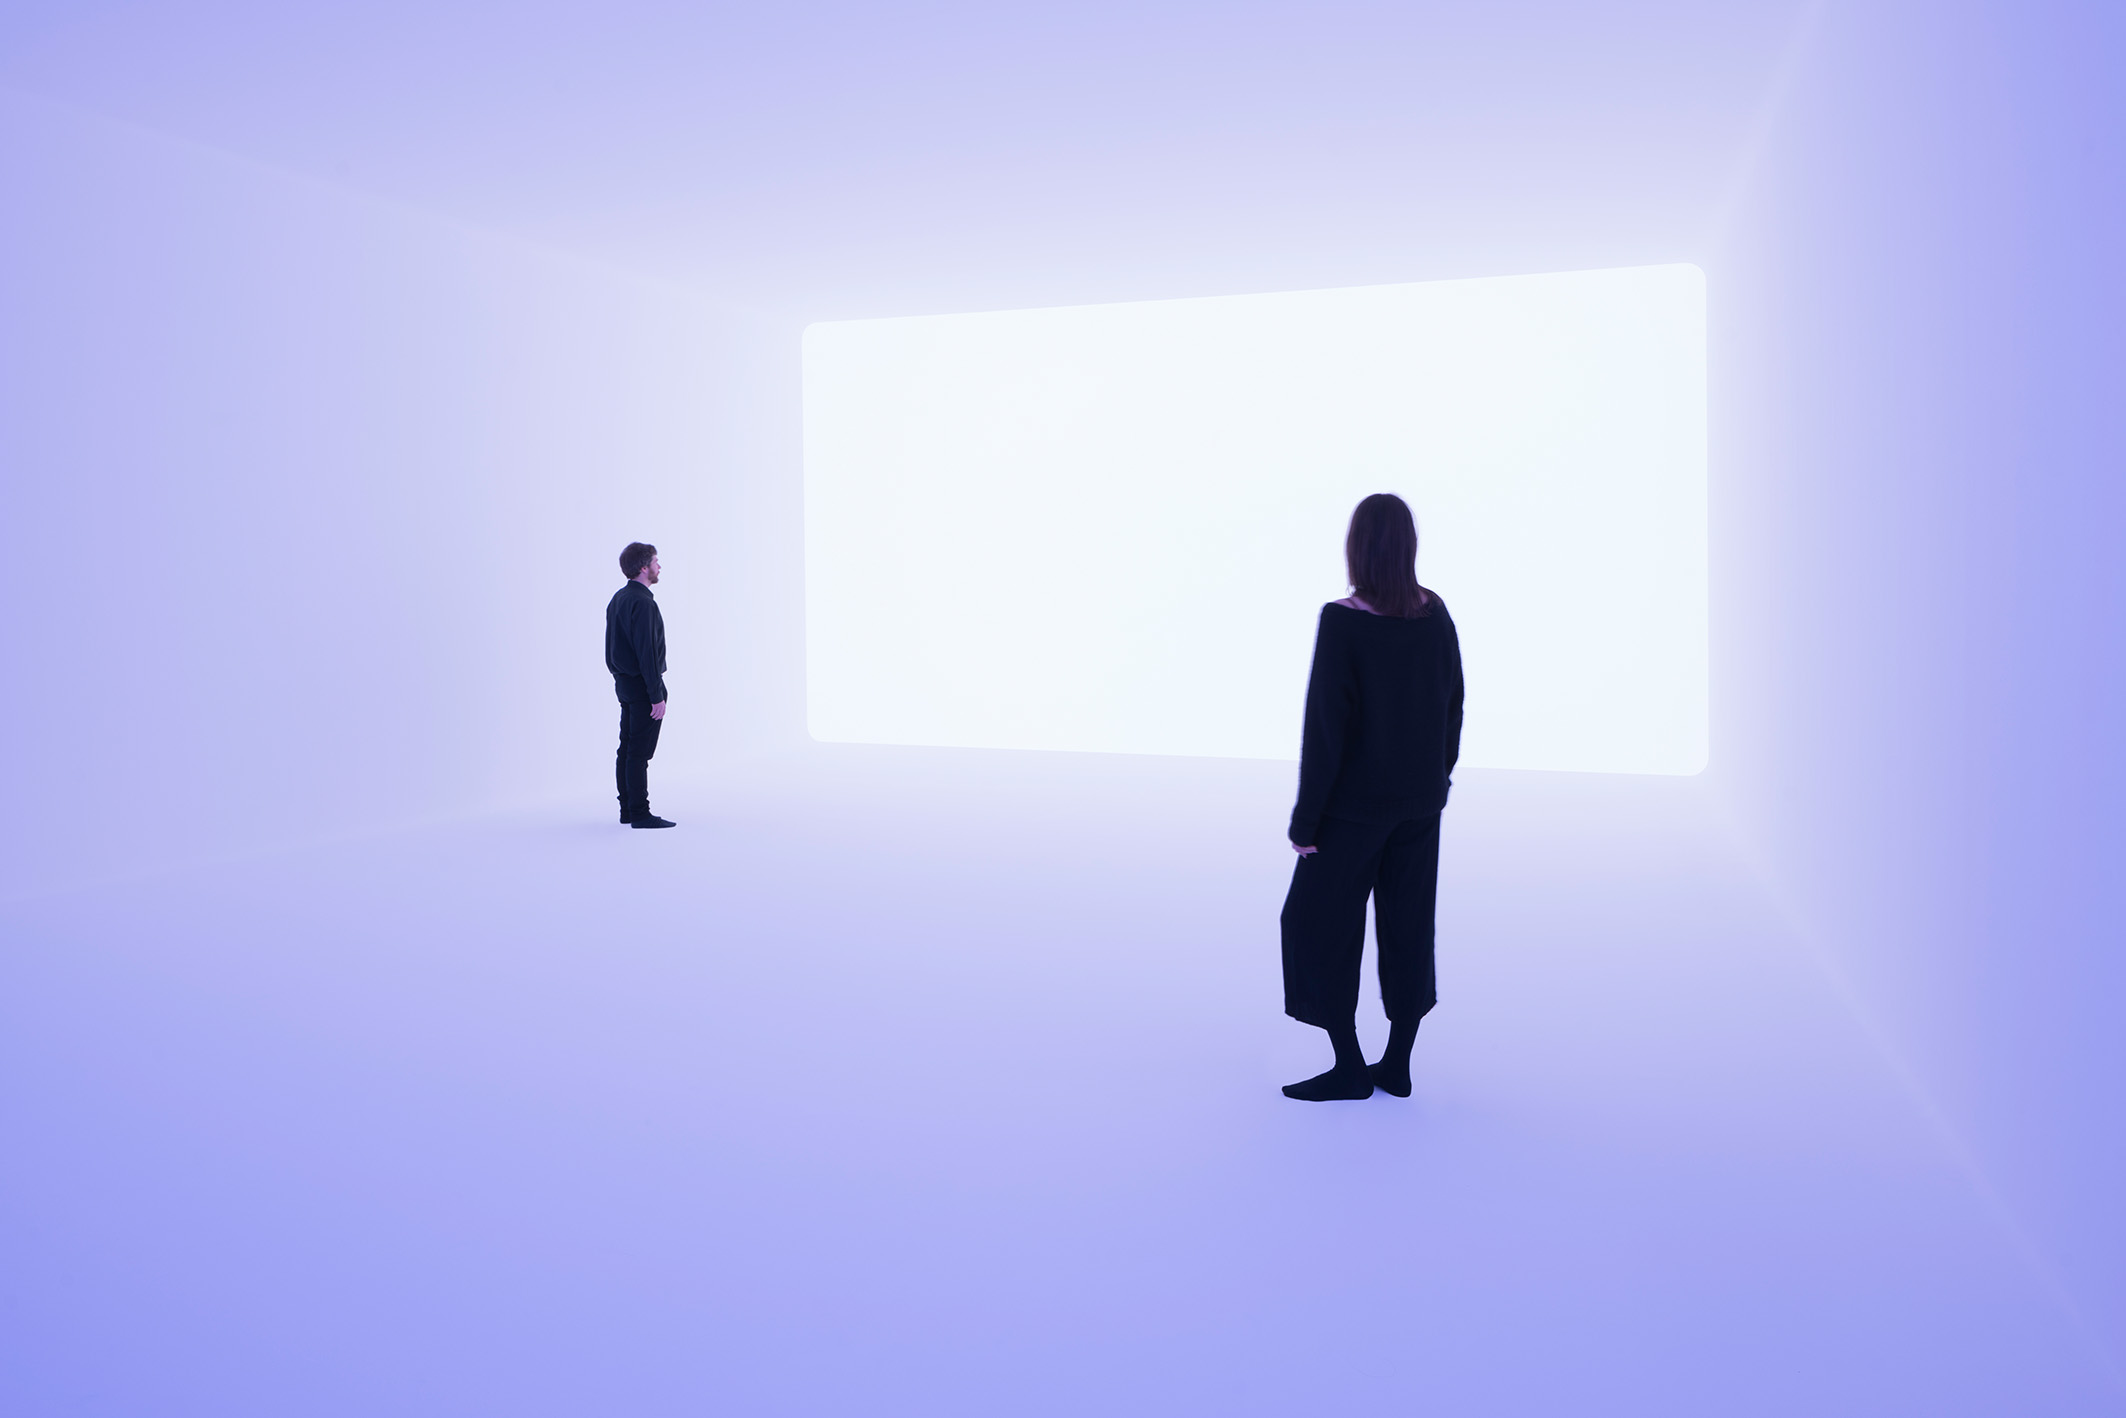 James Turrell, Ganzfeld Aural, 2018; © Jewish Museum Berlin, gift of Dieter and Si Rosenkranz, photo: Florian Holzherr